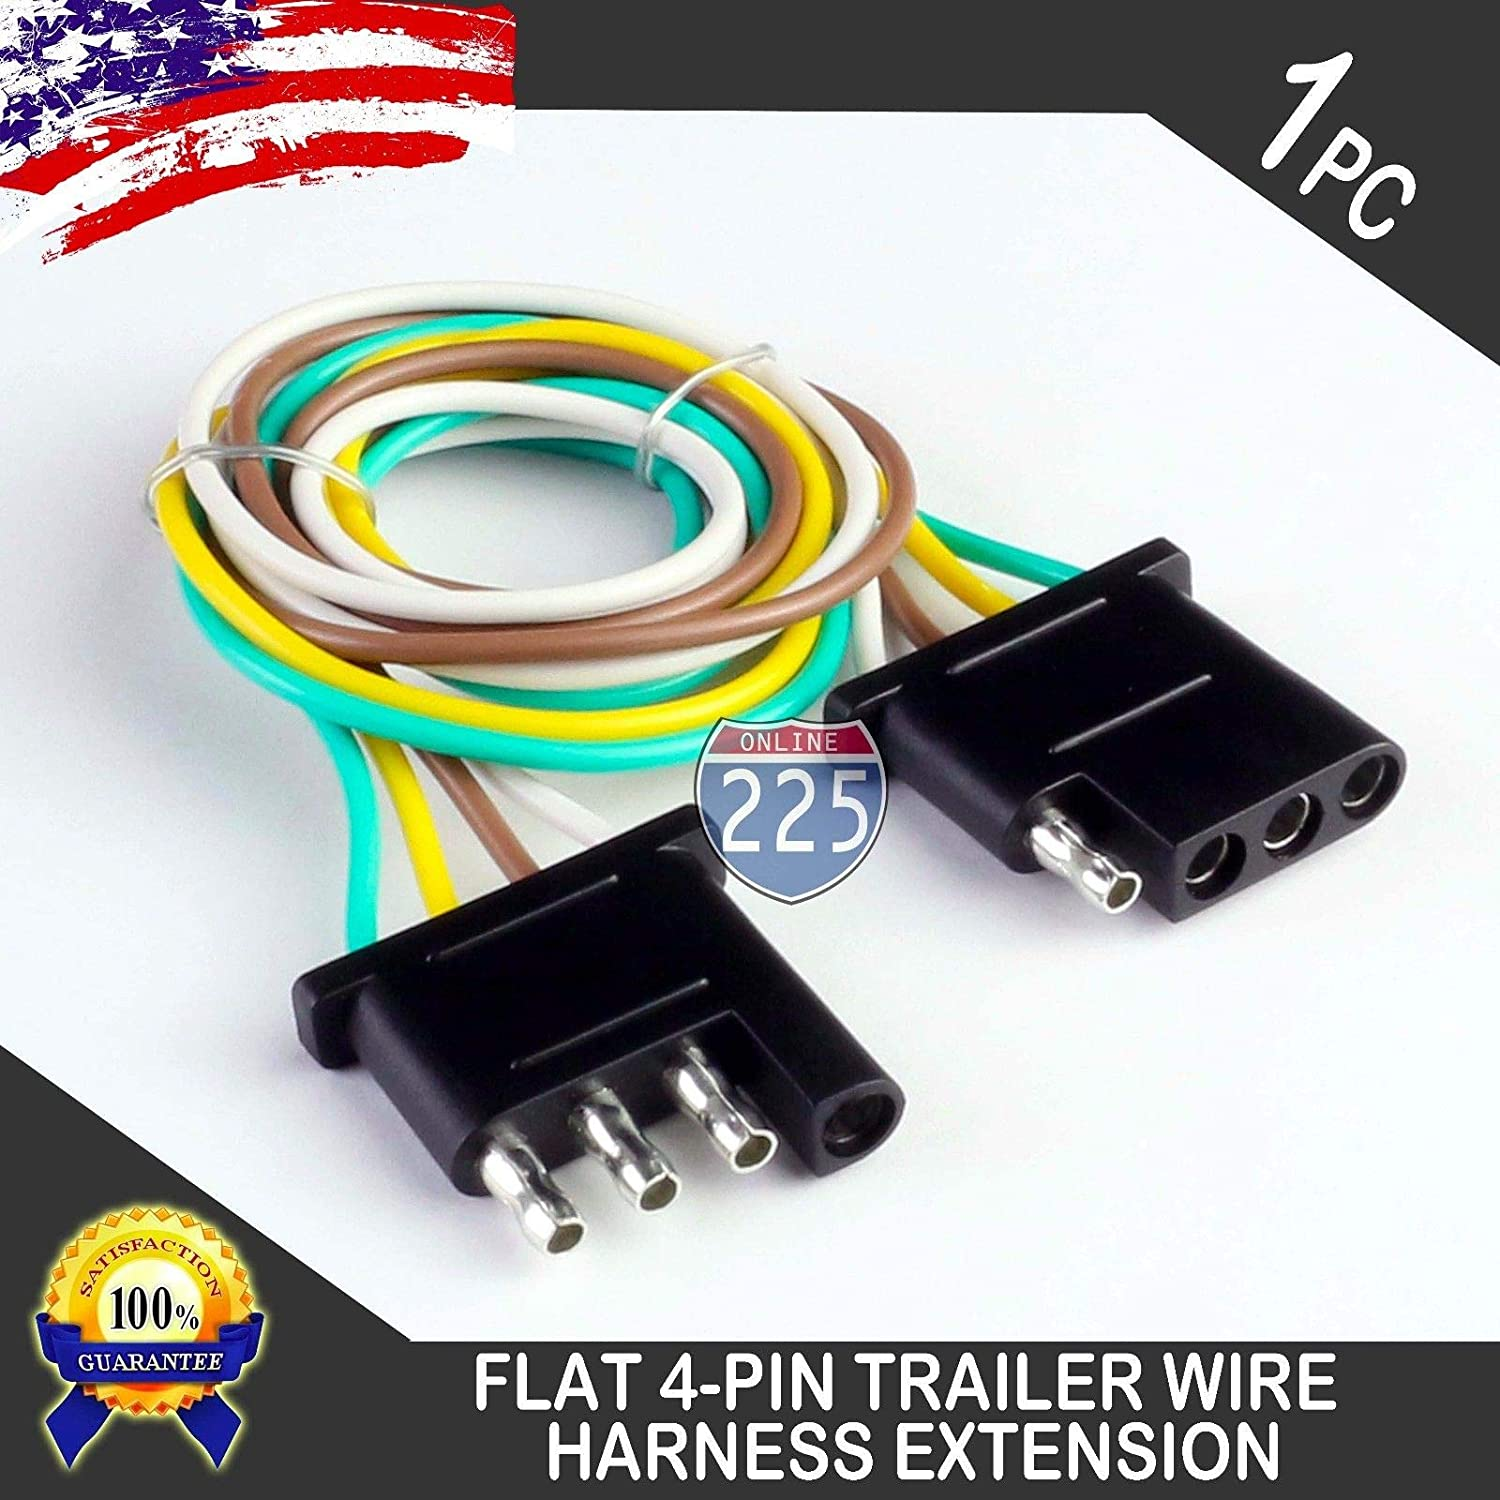 225fwy 6 Feet Trailer Light Wiring Harness Extension 4 Pin Plus 18 Awg Flat Wire Connector Automotive